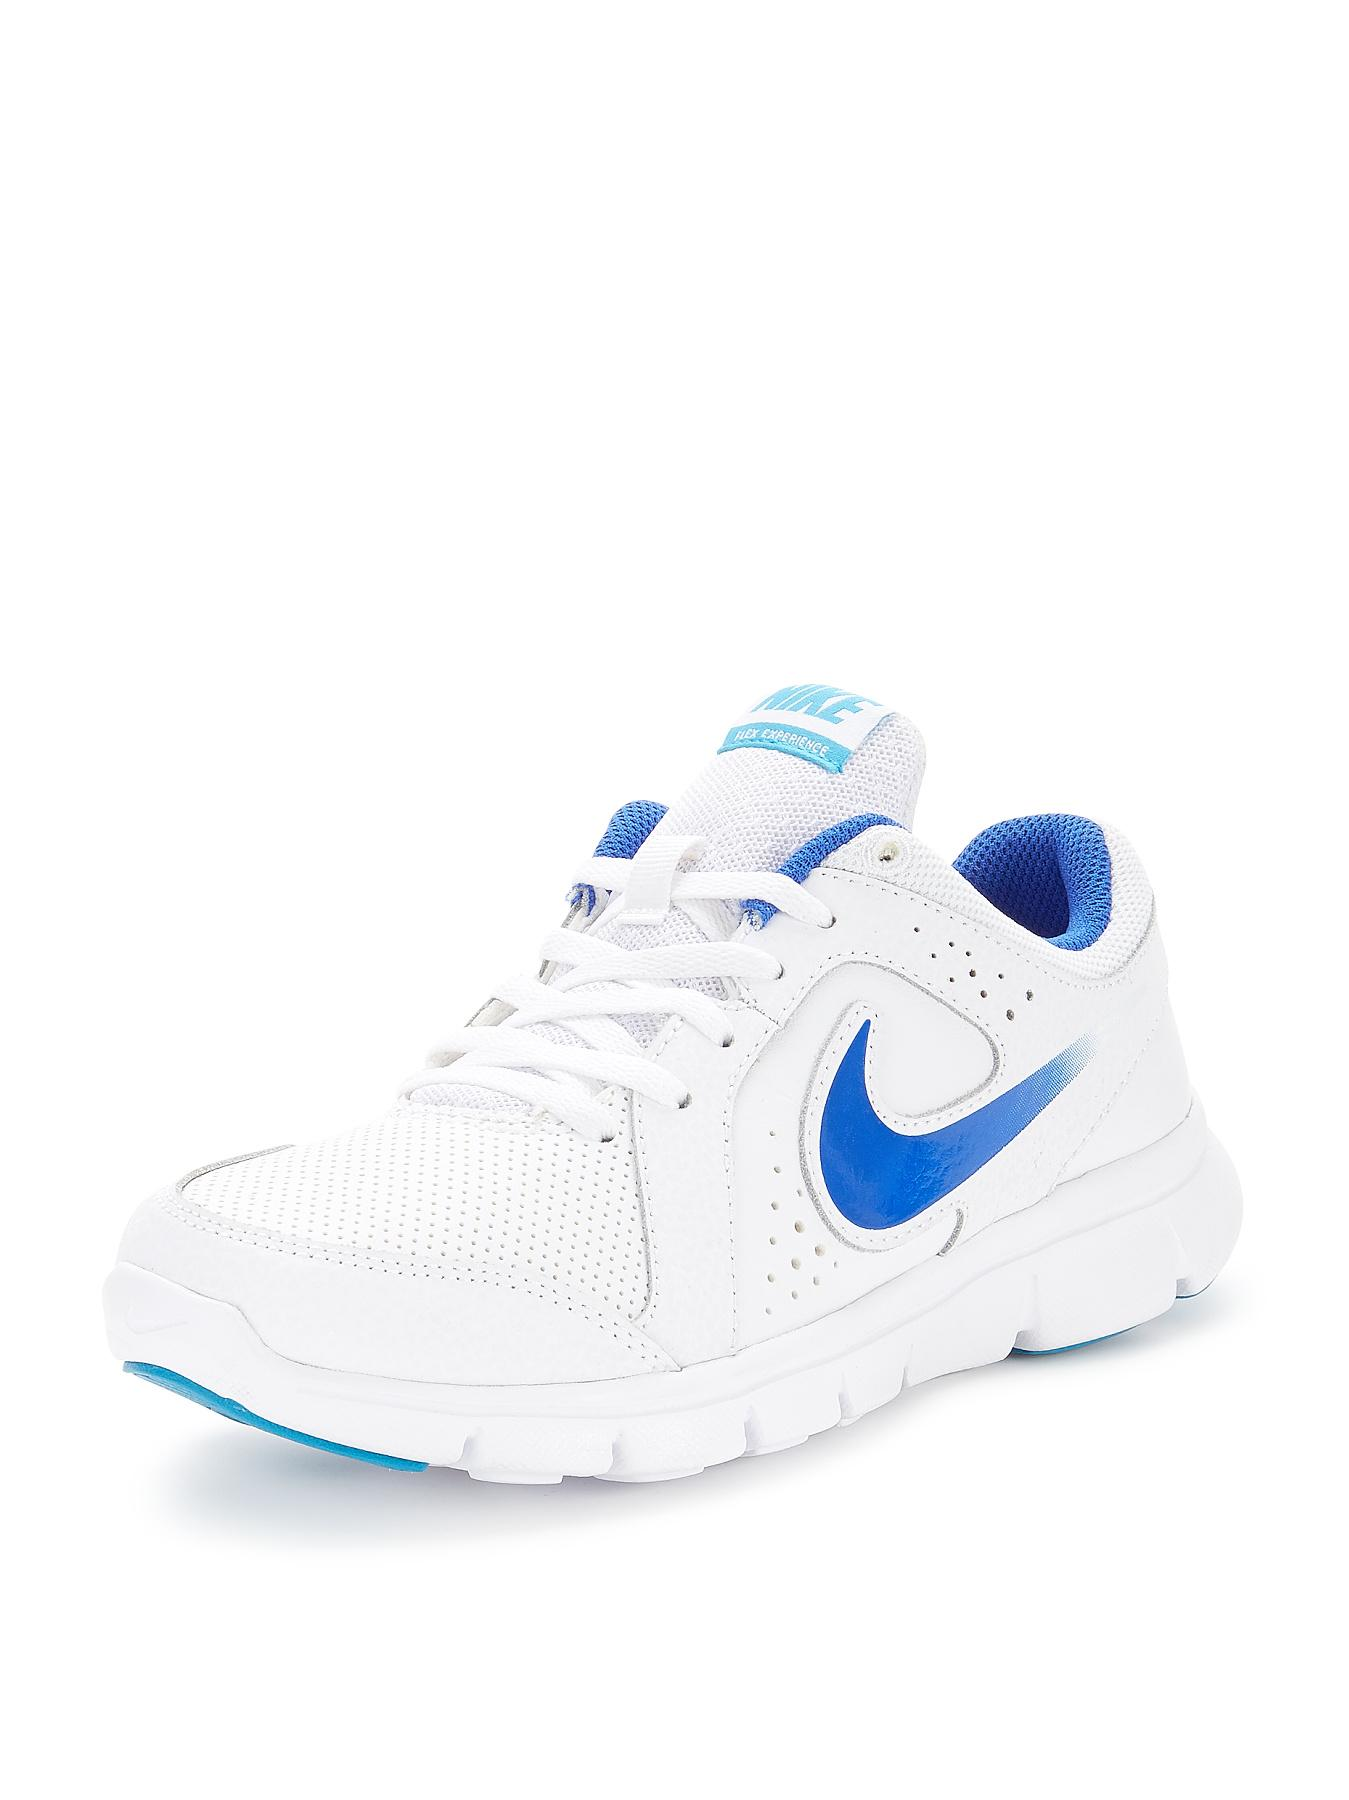 Nike Flex Experience LTR Junior Trainers - White, White